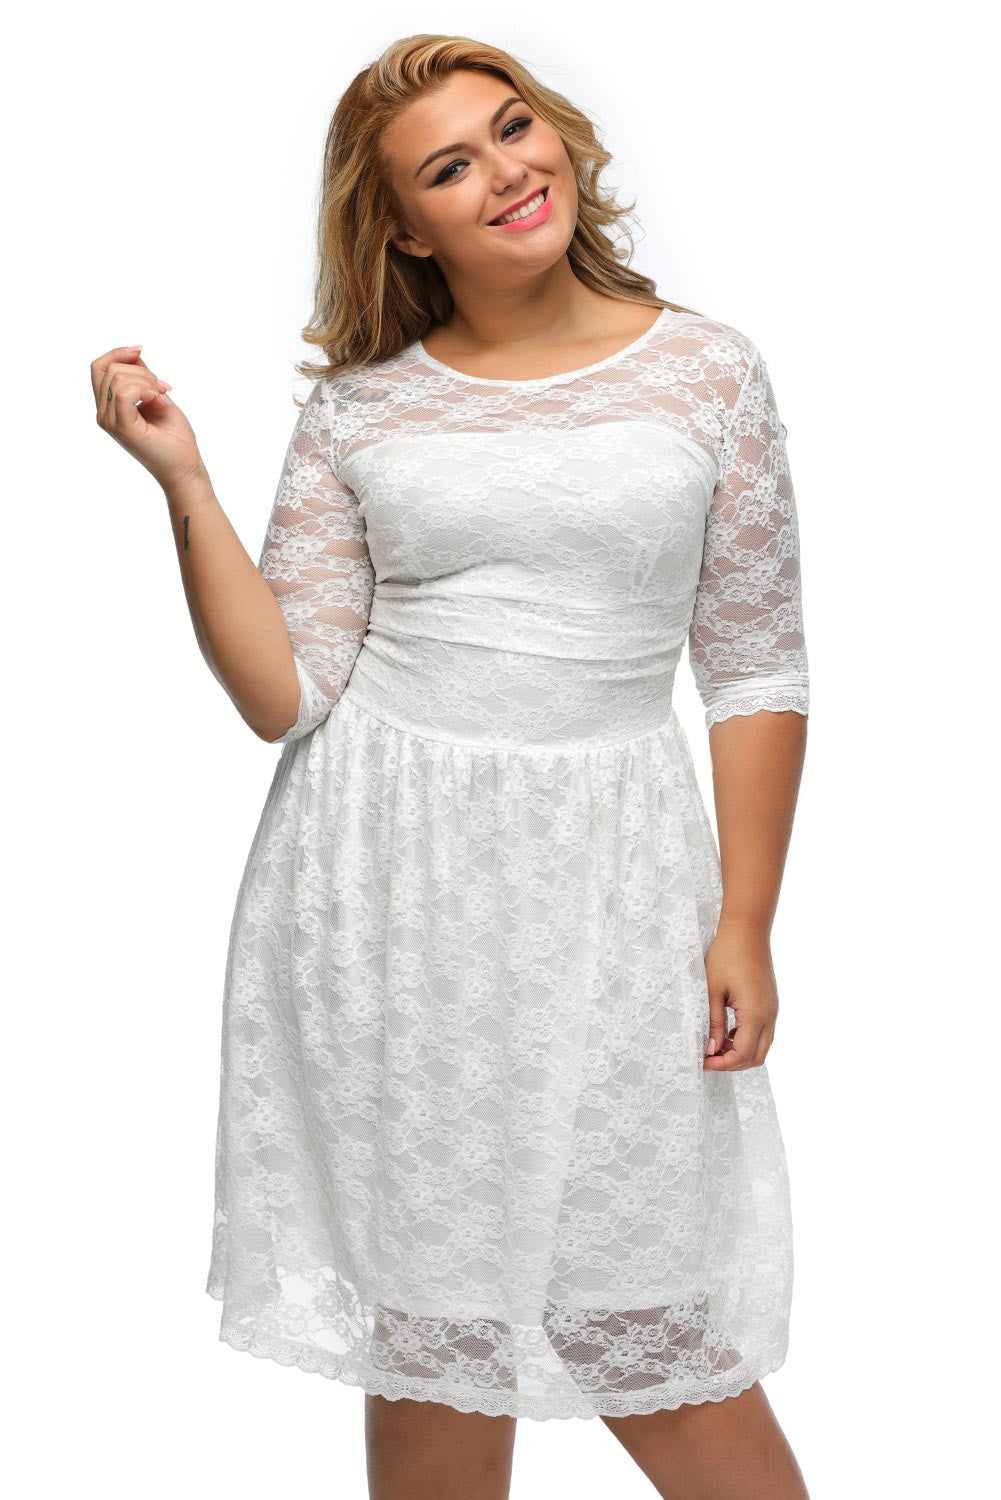 BIG'n'BEAUTIFUL Stylish White Lace Women Classic Plus Dress (LIMITED EDITION)